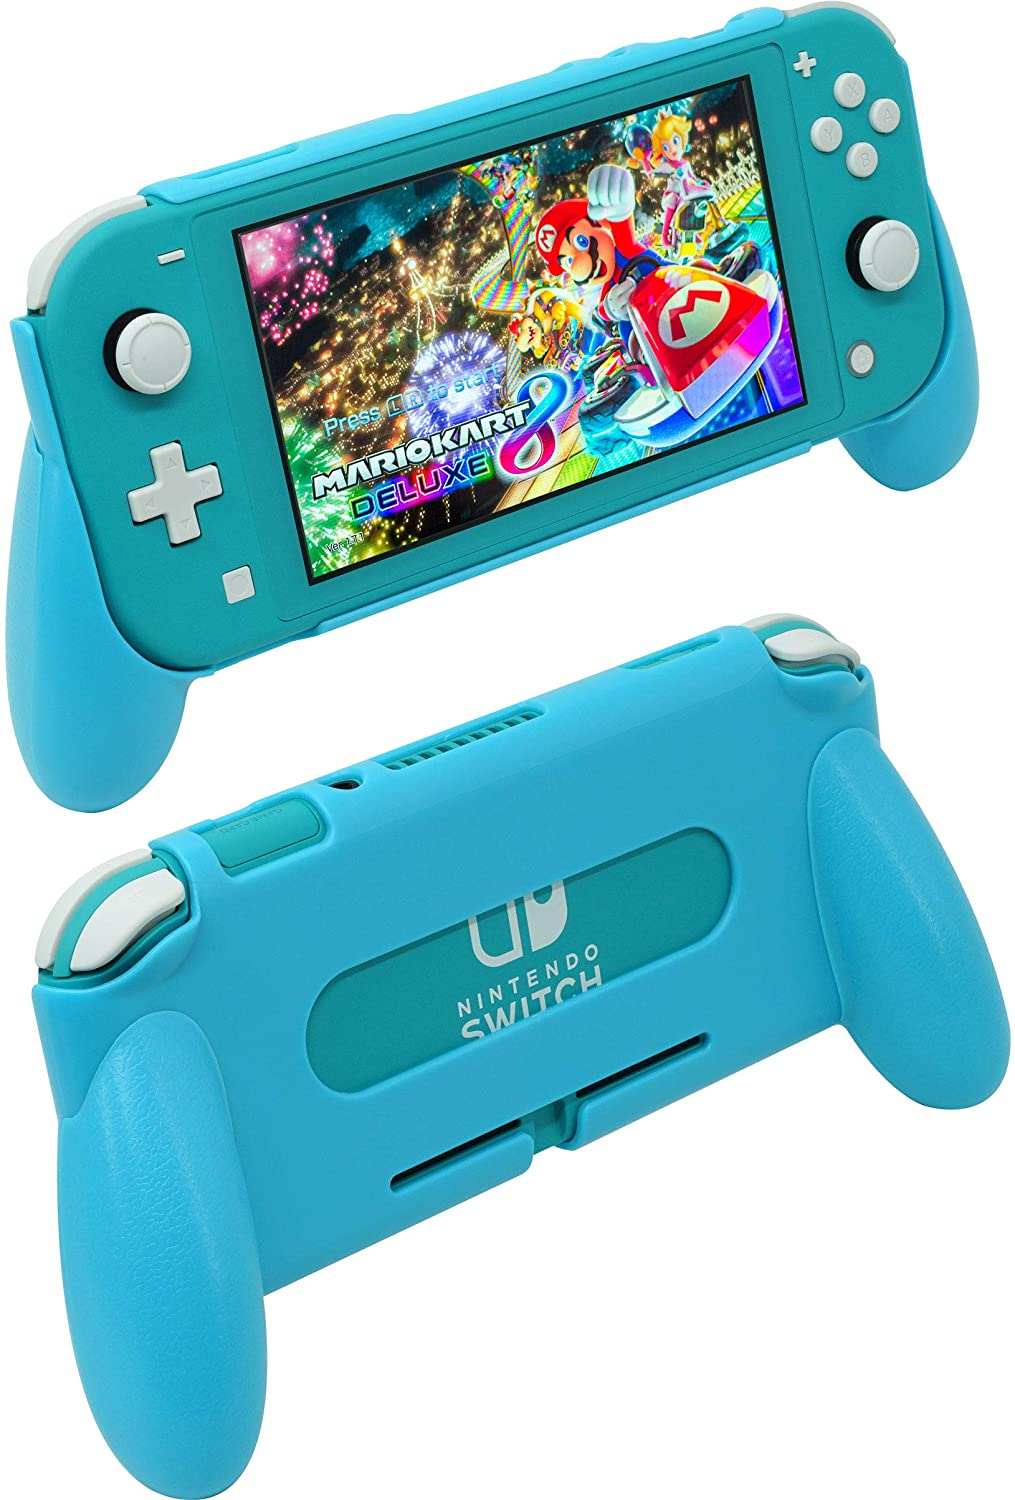 ButterFox Hand Grip Case for Nintendo Switch Lite - Turquoise